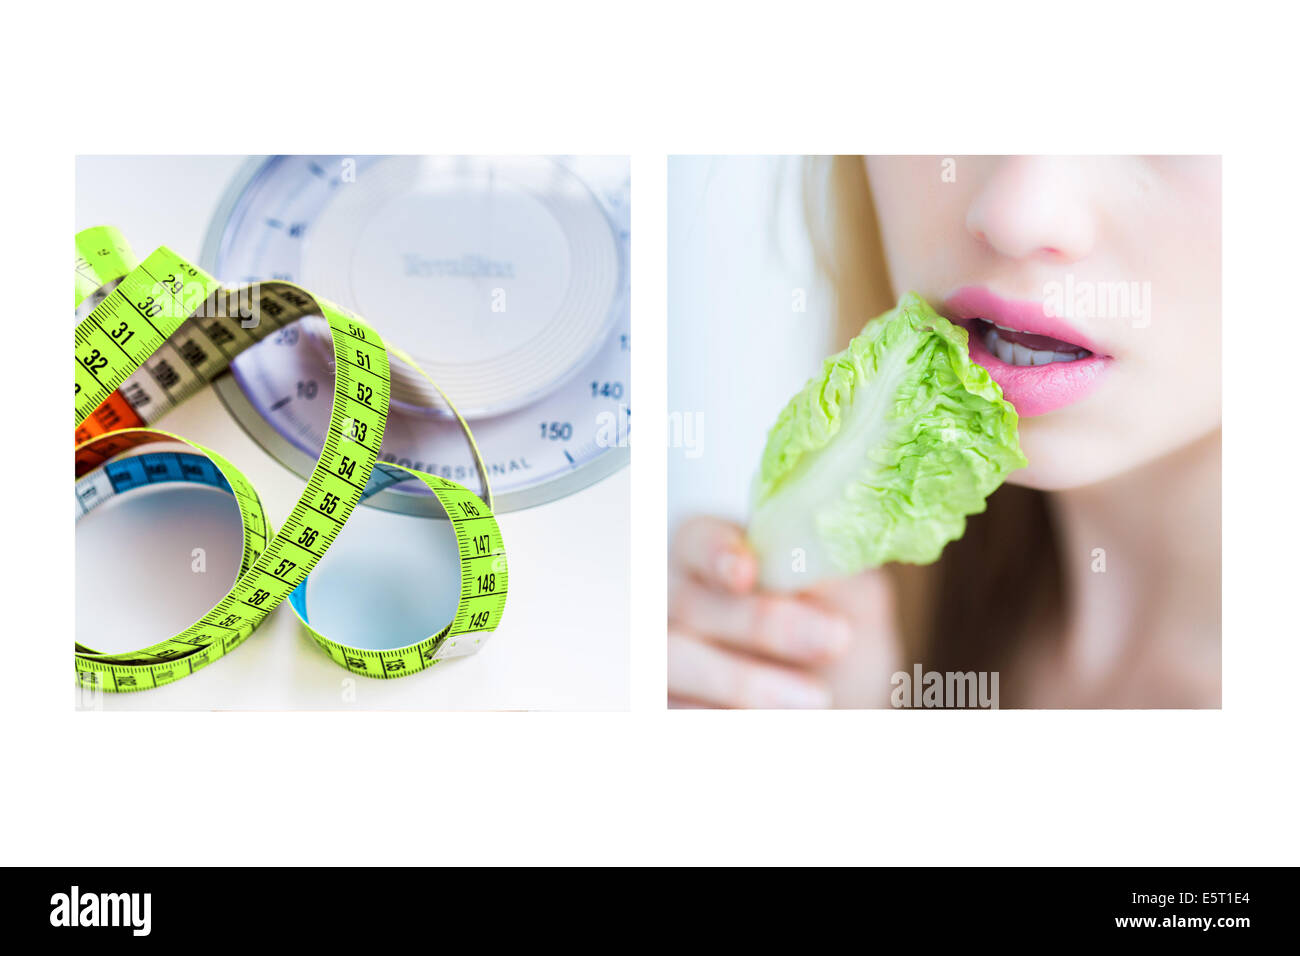 Dieting concept. Stock Photo